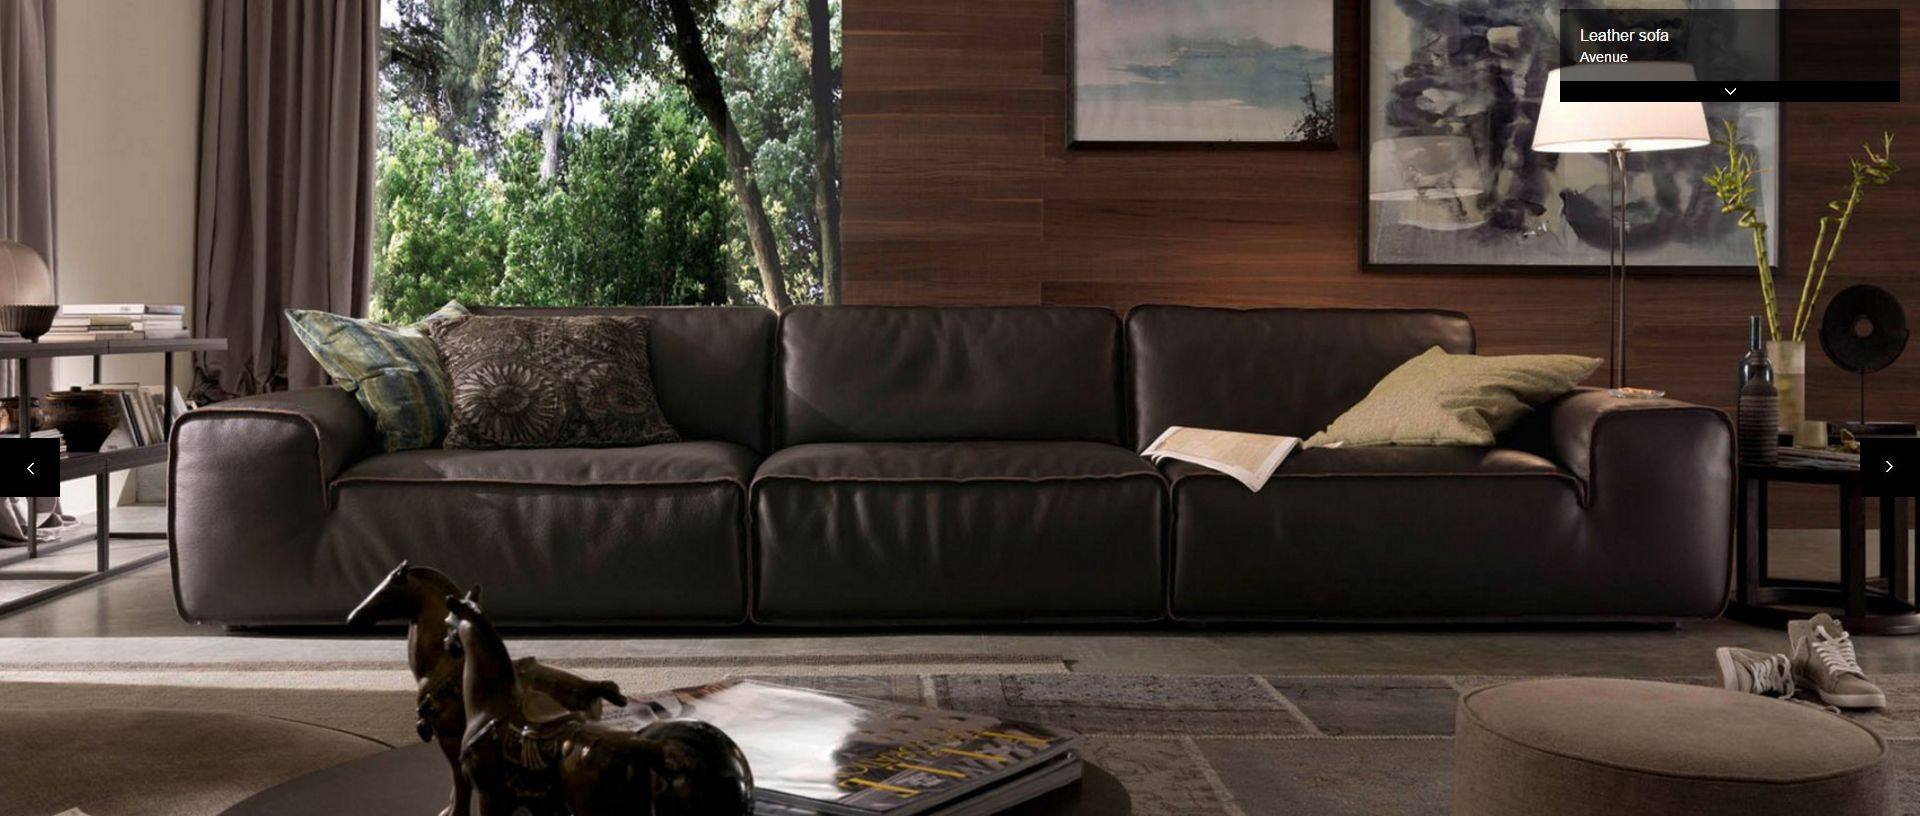 Amazing Avenue Sectional By Chateau Dax Italy Shown In Leather Caraccident5 Cool Chair Designs And Ideas Caraccident5Info